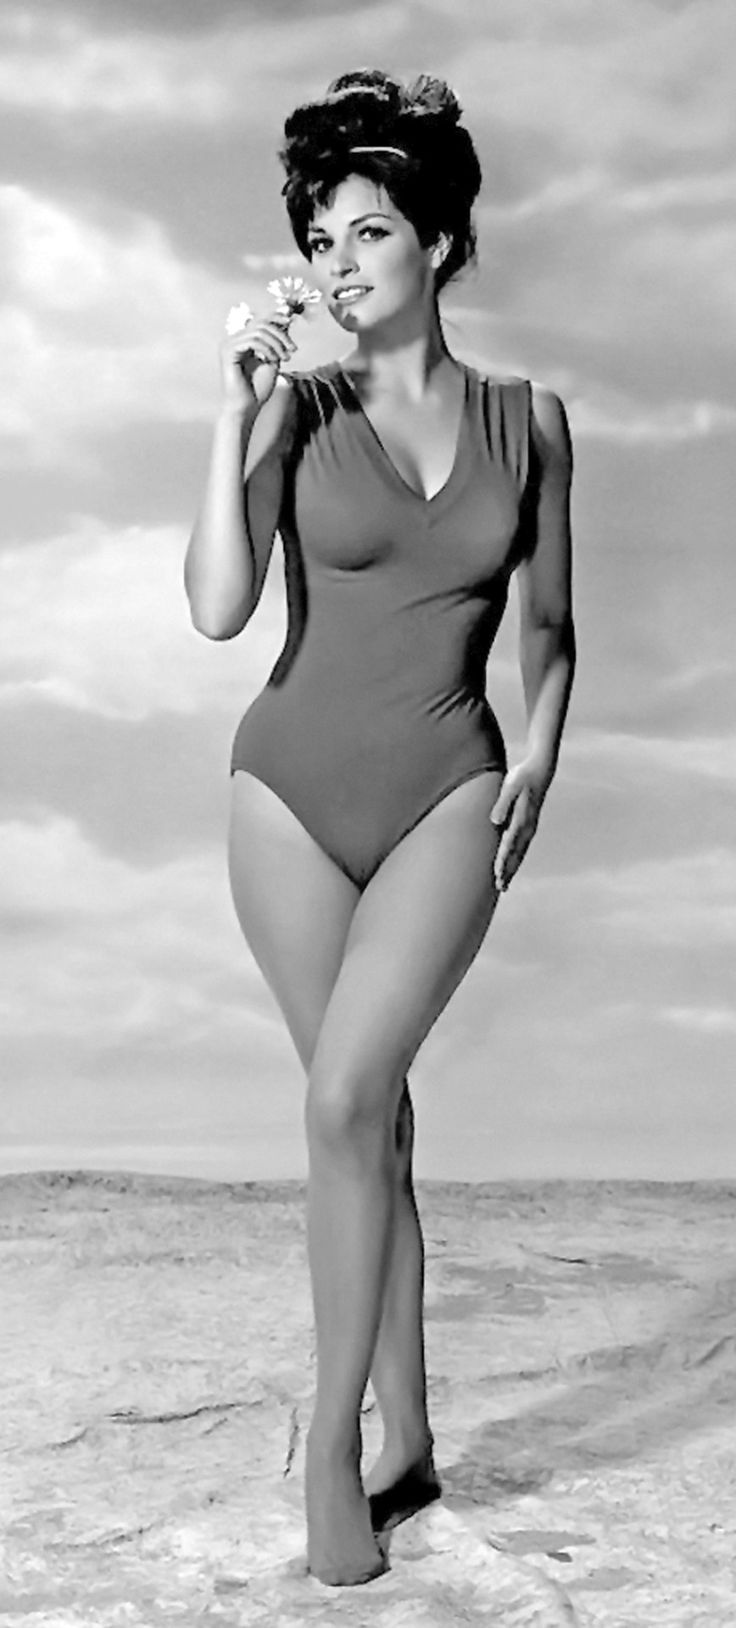 21 best raquel welch playboy images on Pinterest   Celebs, Famous people and Beautiful women